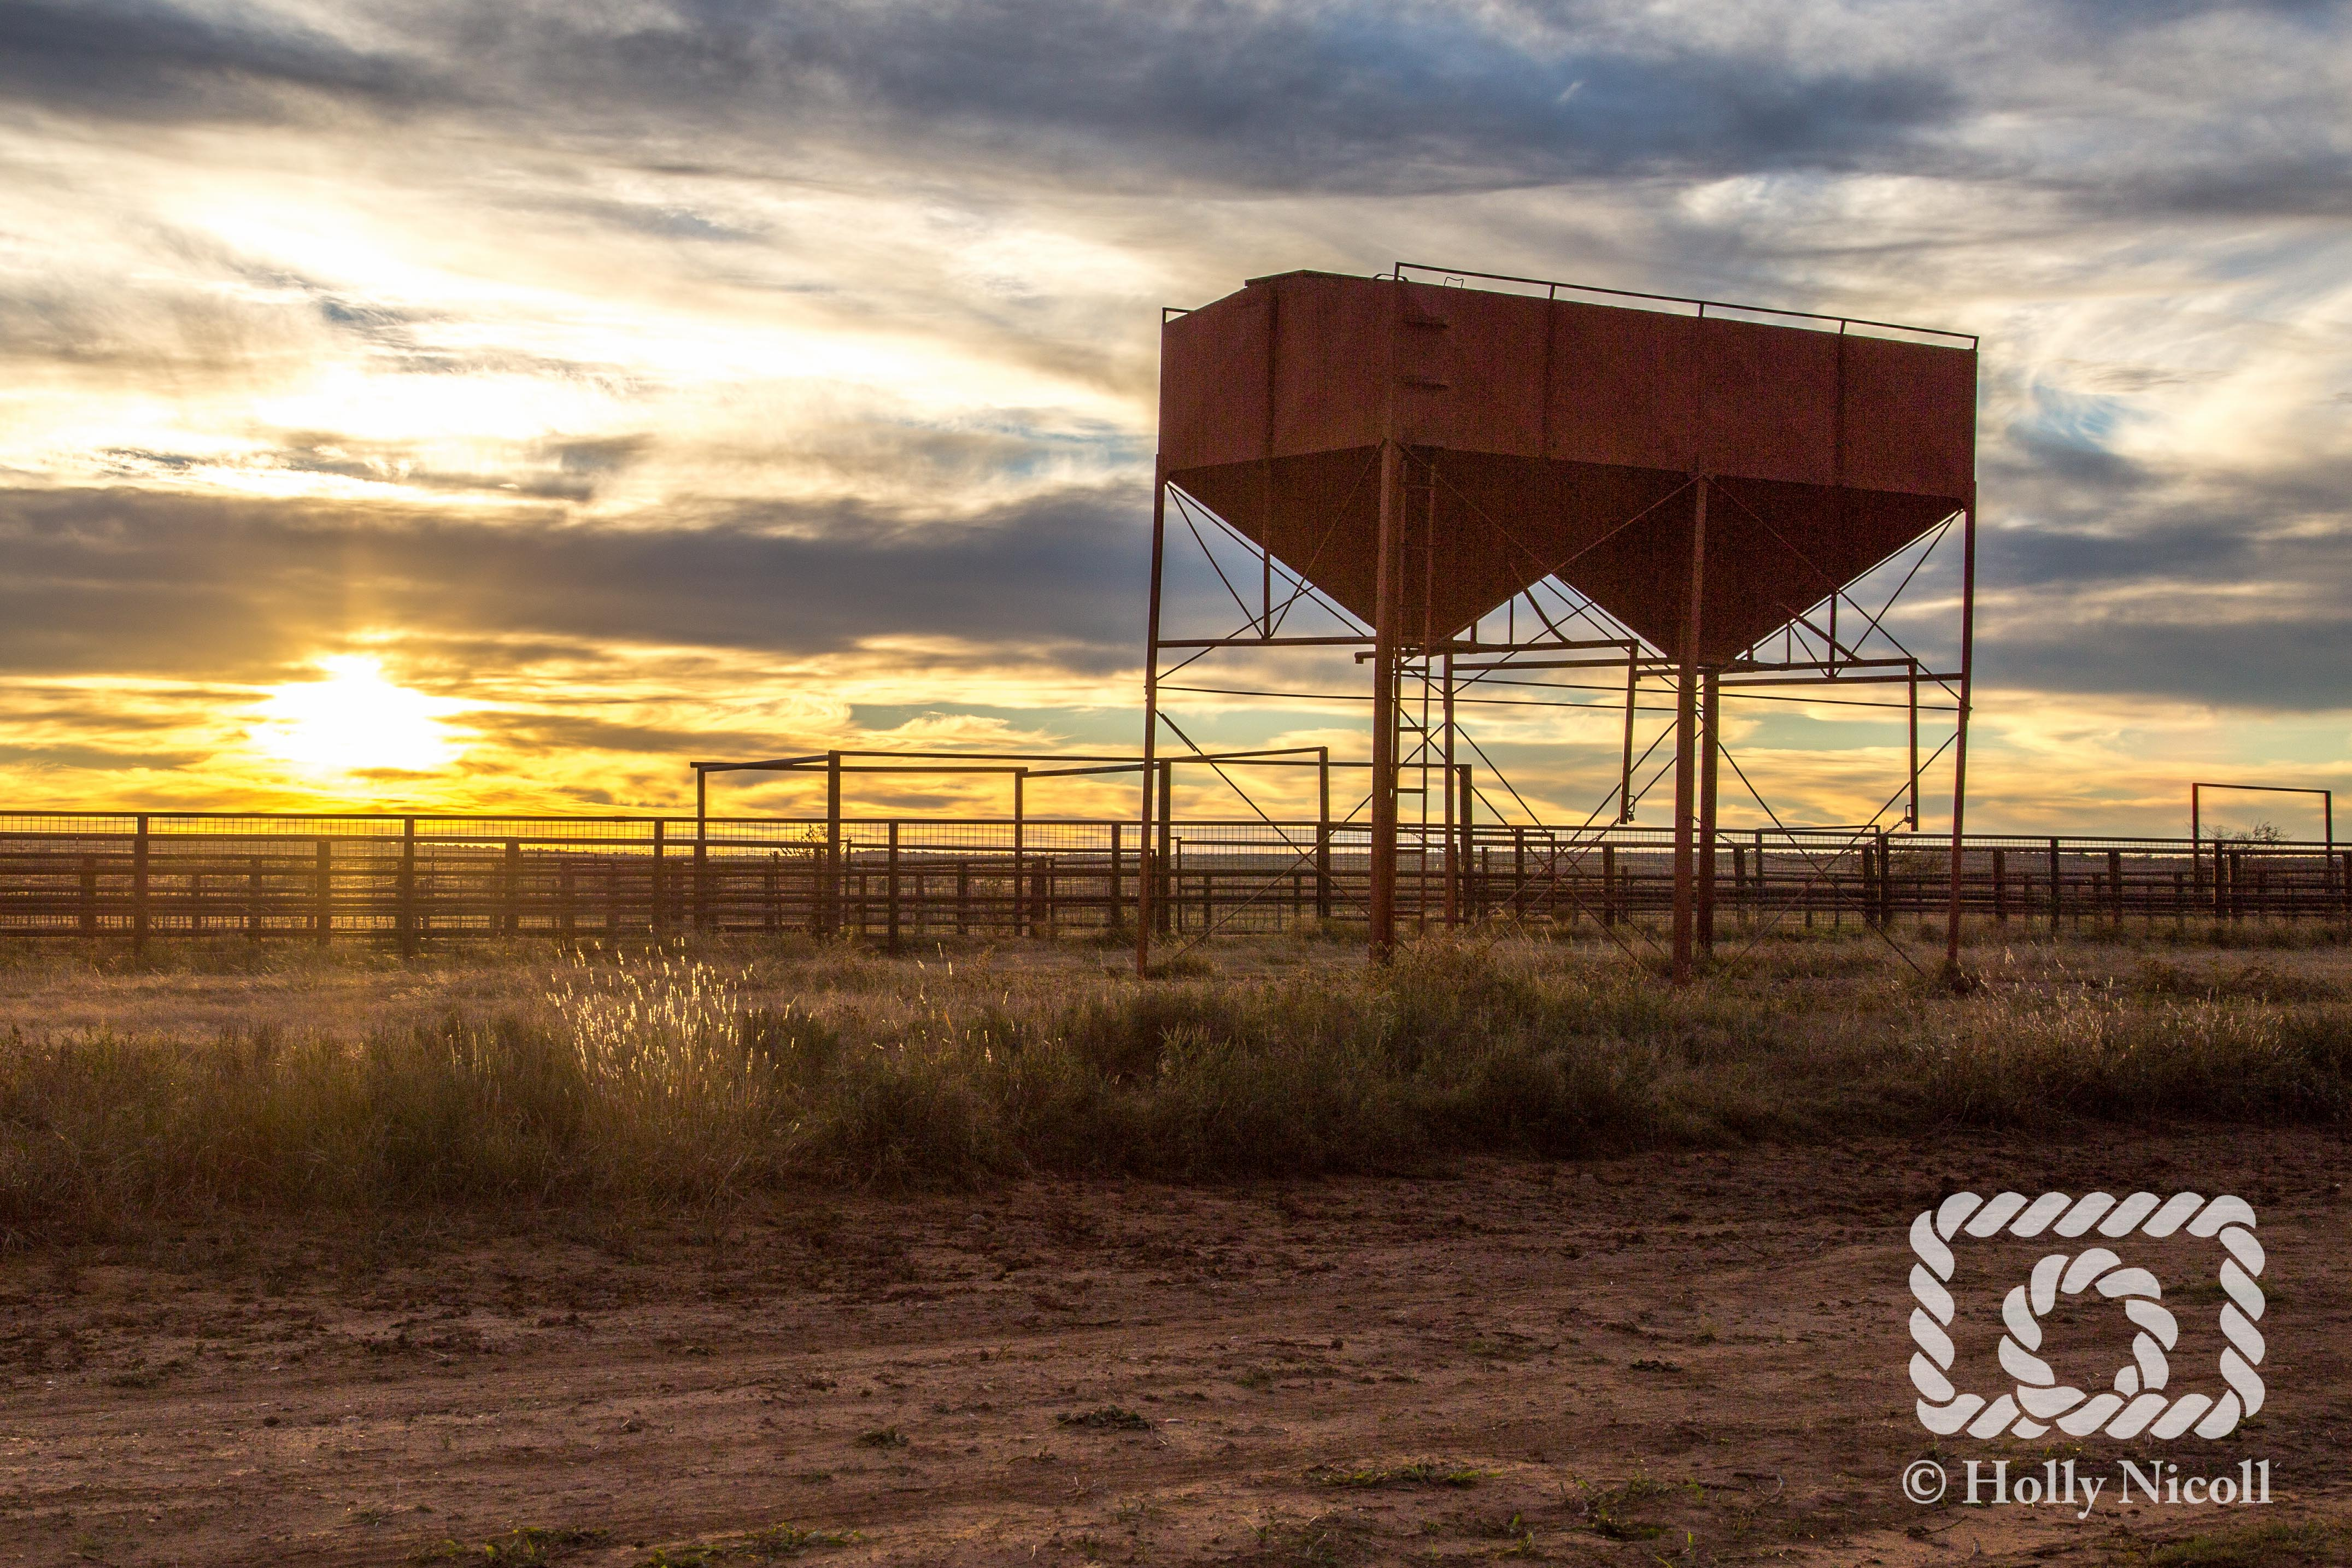 The sun rises behind feeder bins on the Matador Ranch in West Texas.